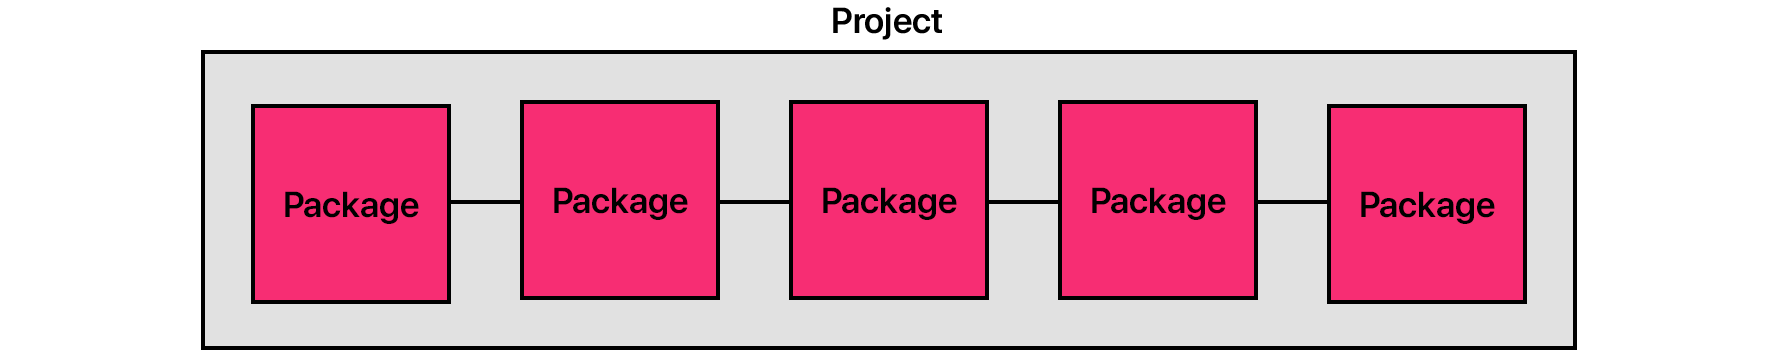 Diagram: Project with many packages